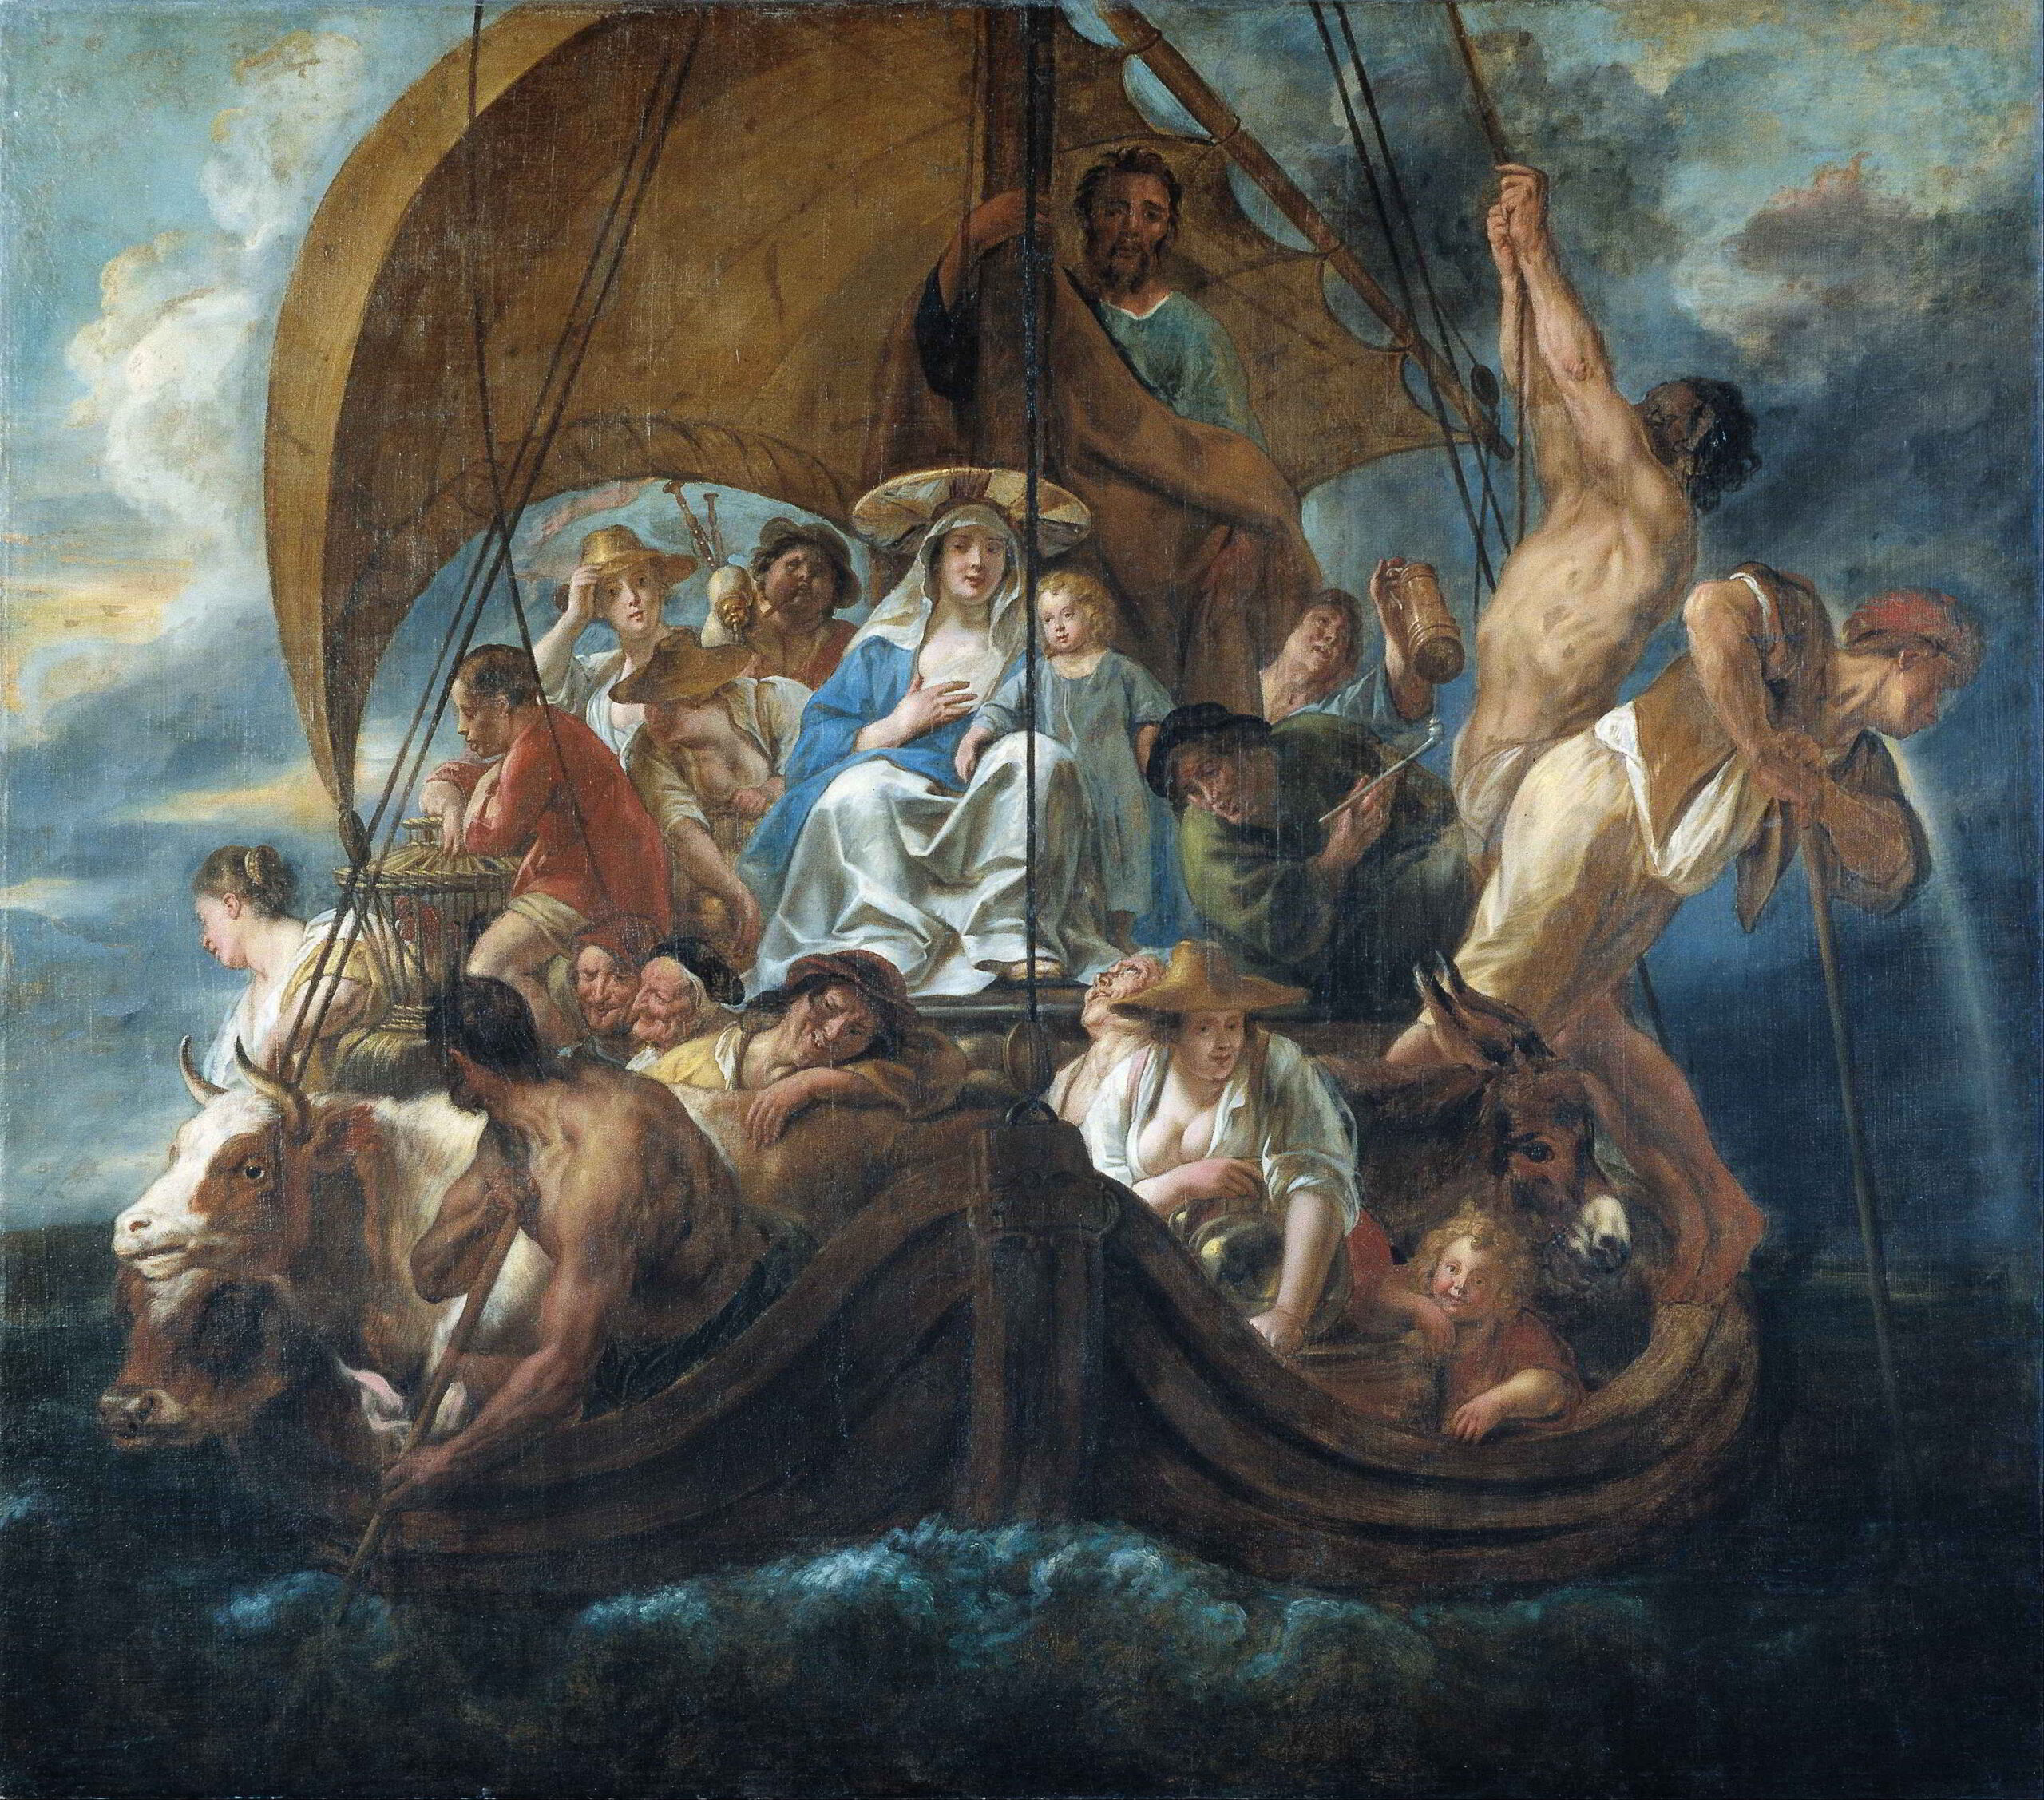 Jacob Jordaens (1593-1678), The Holy Family with Various Persons and Animals in a Boat, 1652 Skokloster Castle, Stockholm